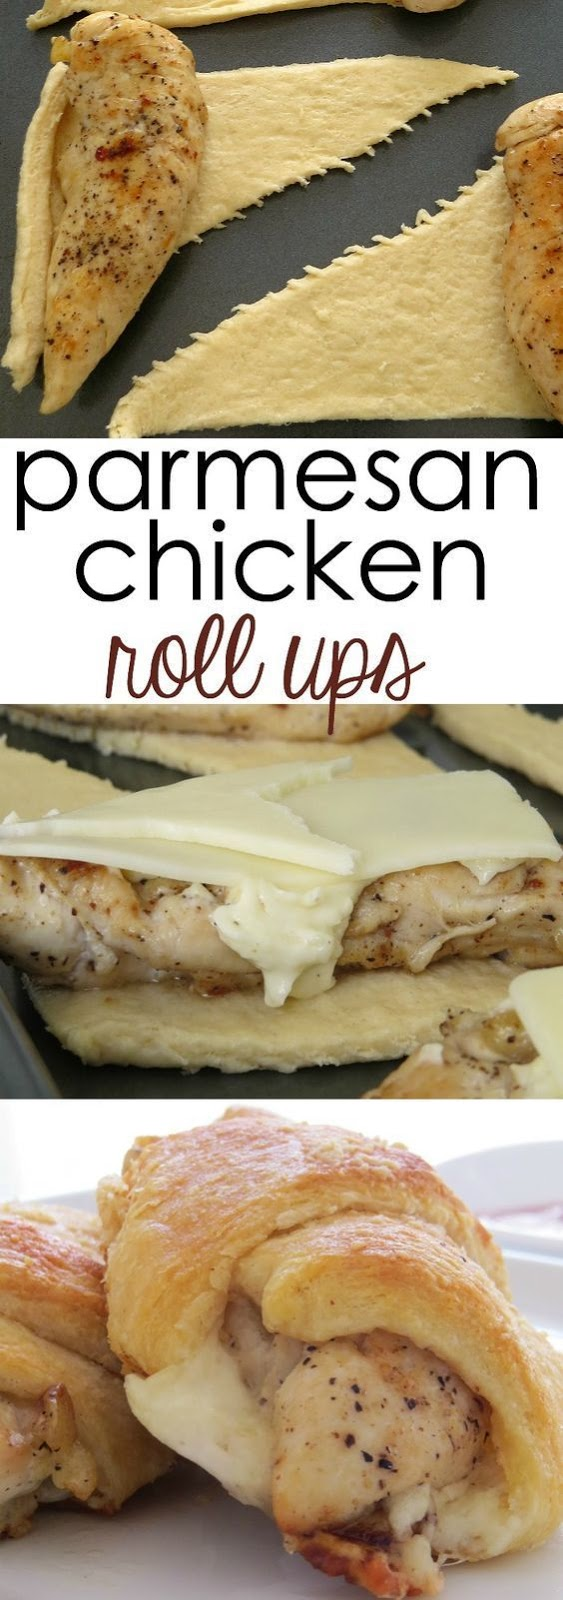 CHICKEN ROLL UPS CRESCENT ROLLS ARE FABULOUS!